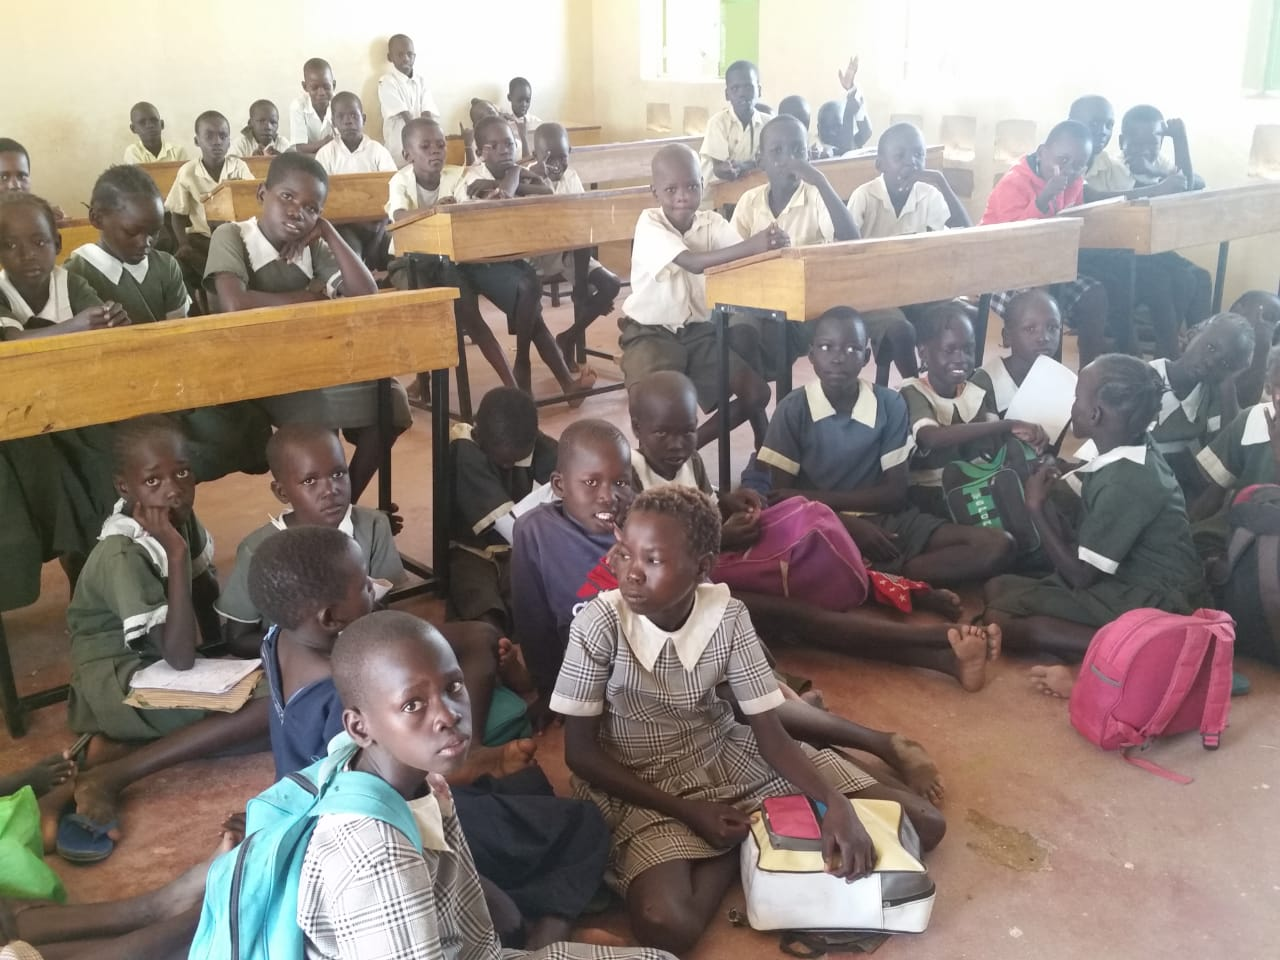 LODWAR – TURKANA EDUCATION CENTER – NEW CLASSROOMS (2020)